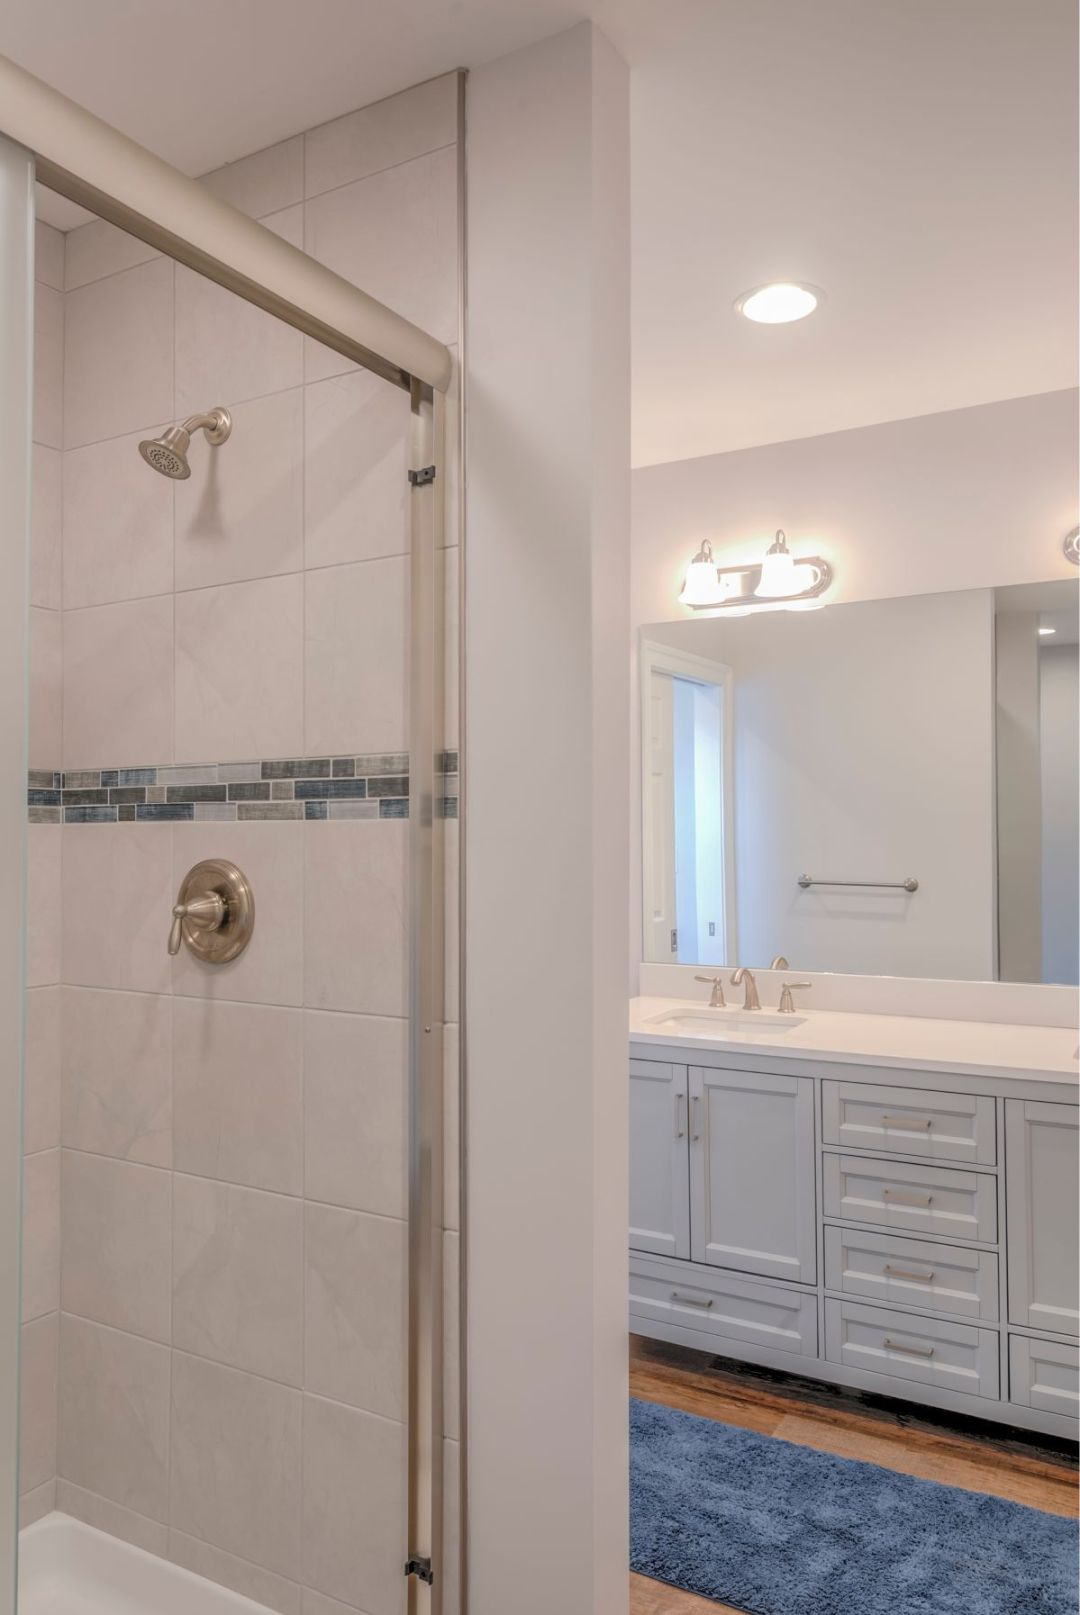 New Addition in October Glory, Ocean View DE - Bathroom with Bevalo 12x12 Dove Tiles